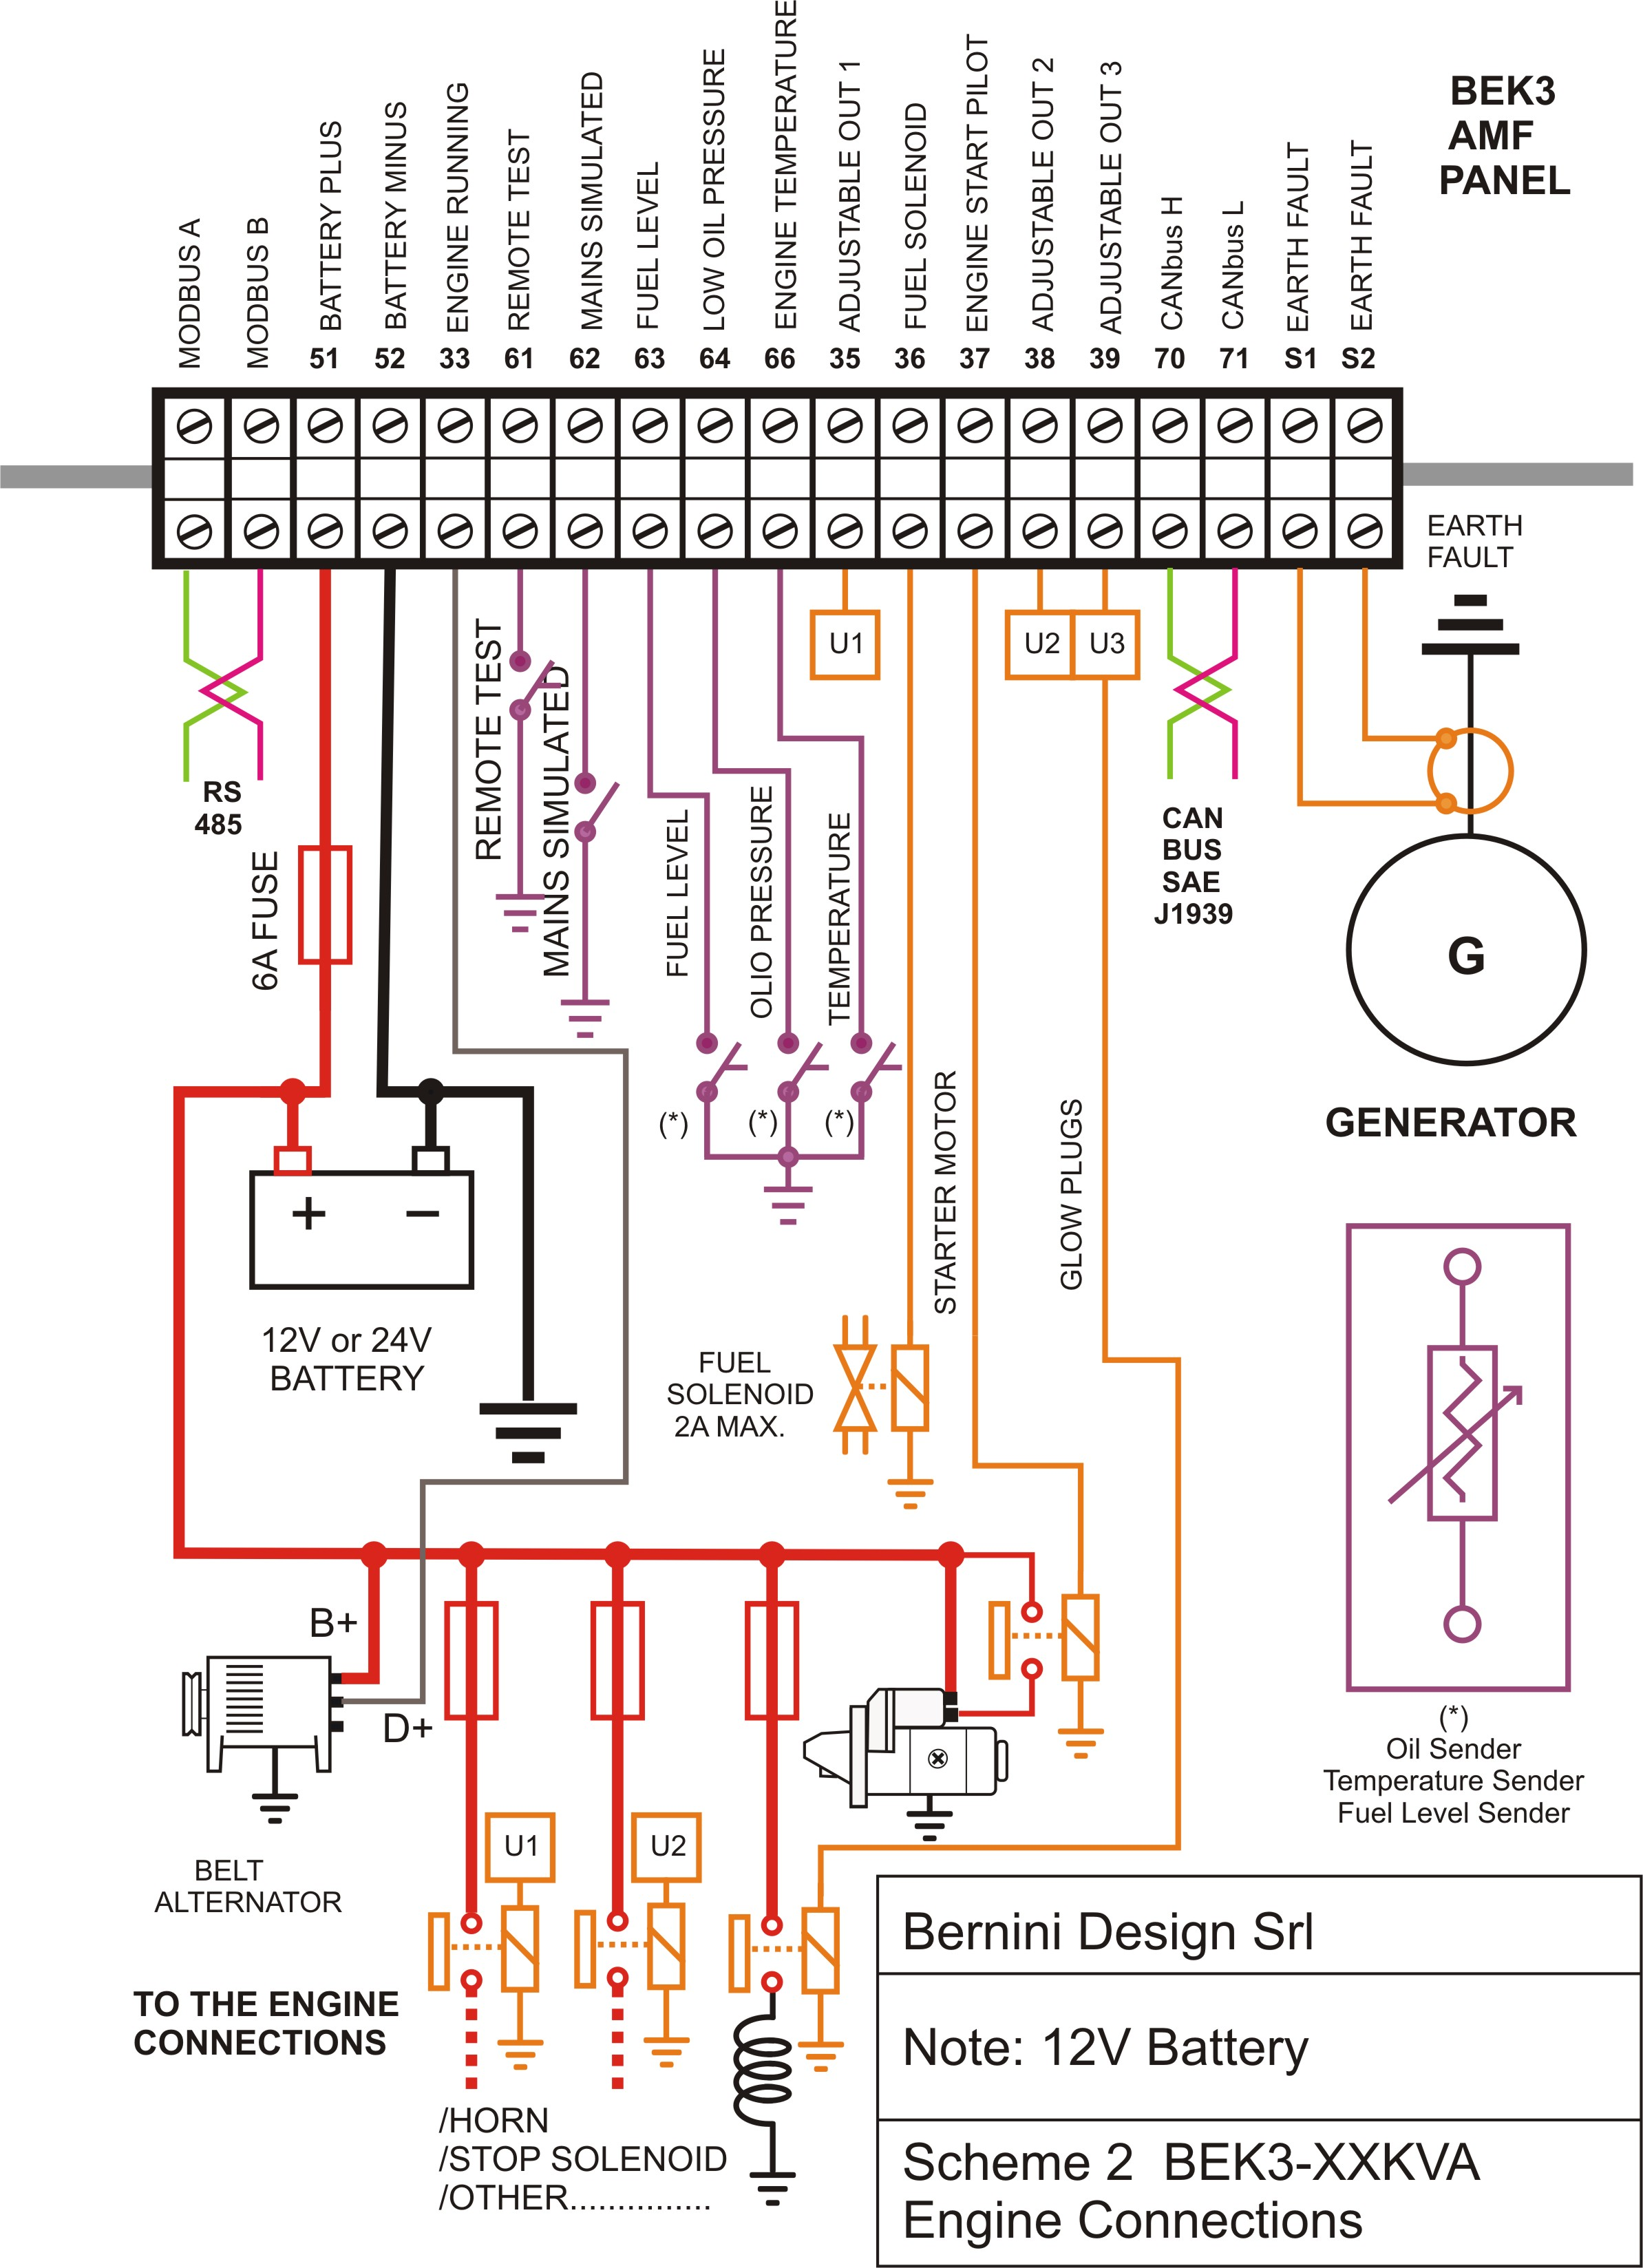 A C Condenser Motor Wiring Diagram besides Jeep Tj Wrangler Blower Motor Relay Test besides 7q3fi F250 Super Duty Diesel 7 3l 99 F250 Super Duty Diesel 7 3l further Aloha Breeze Ceiling Fan Wiring Diagram additionally 177777 1967 Mustang Efi Conversion. on 2 sd ac fan motor wiring diagram